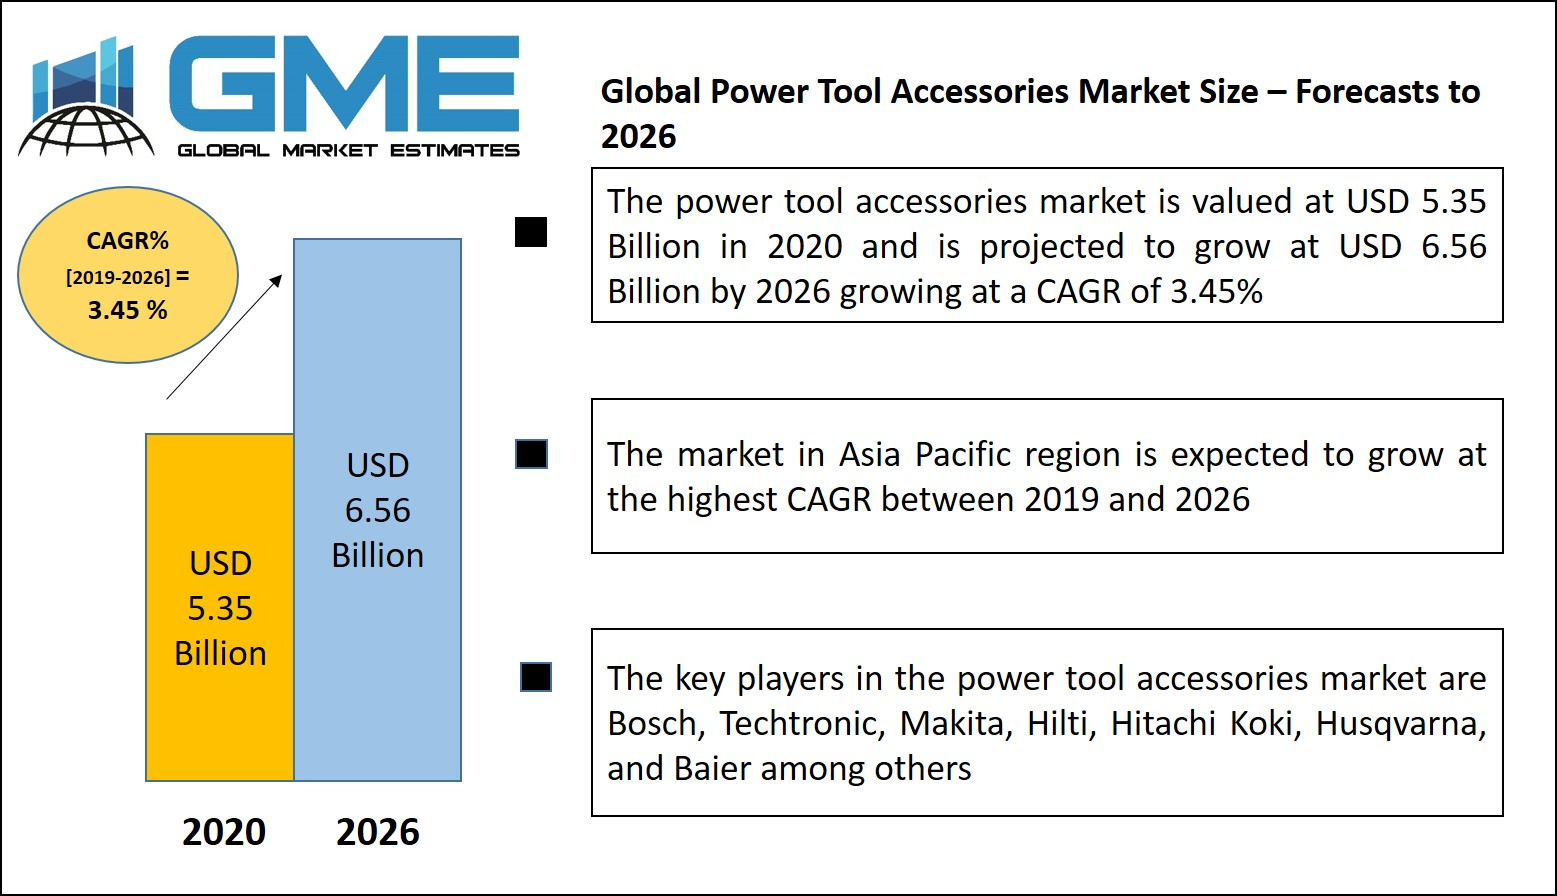 Power Tool Accessories Market Size – Forecasts to 2026